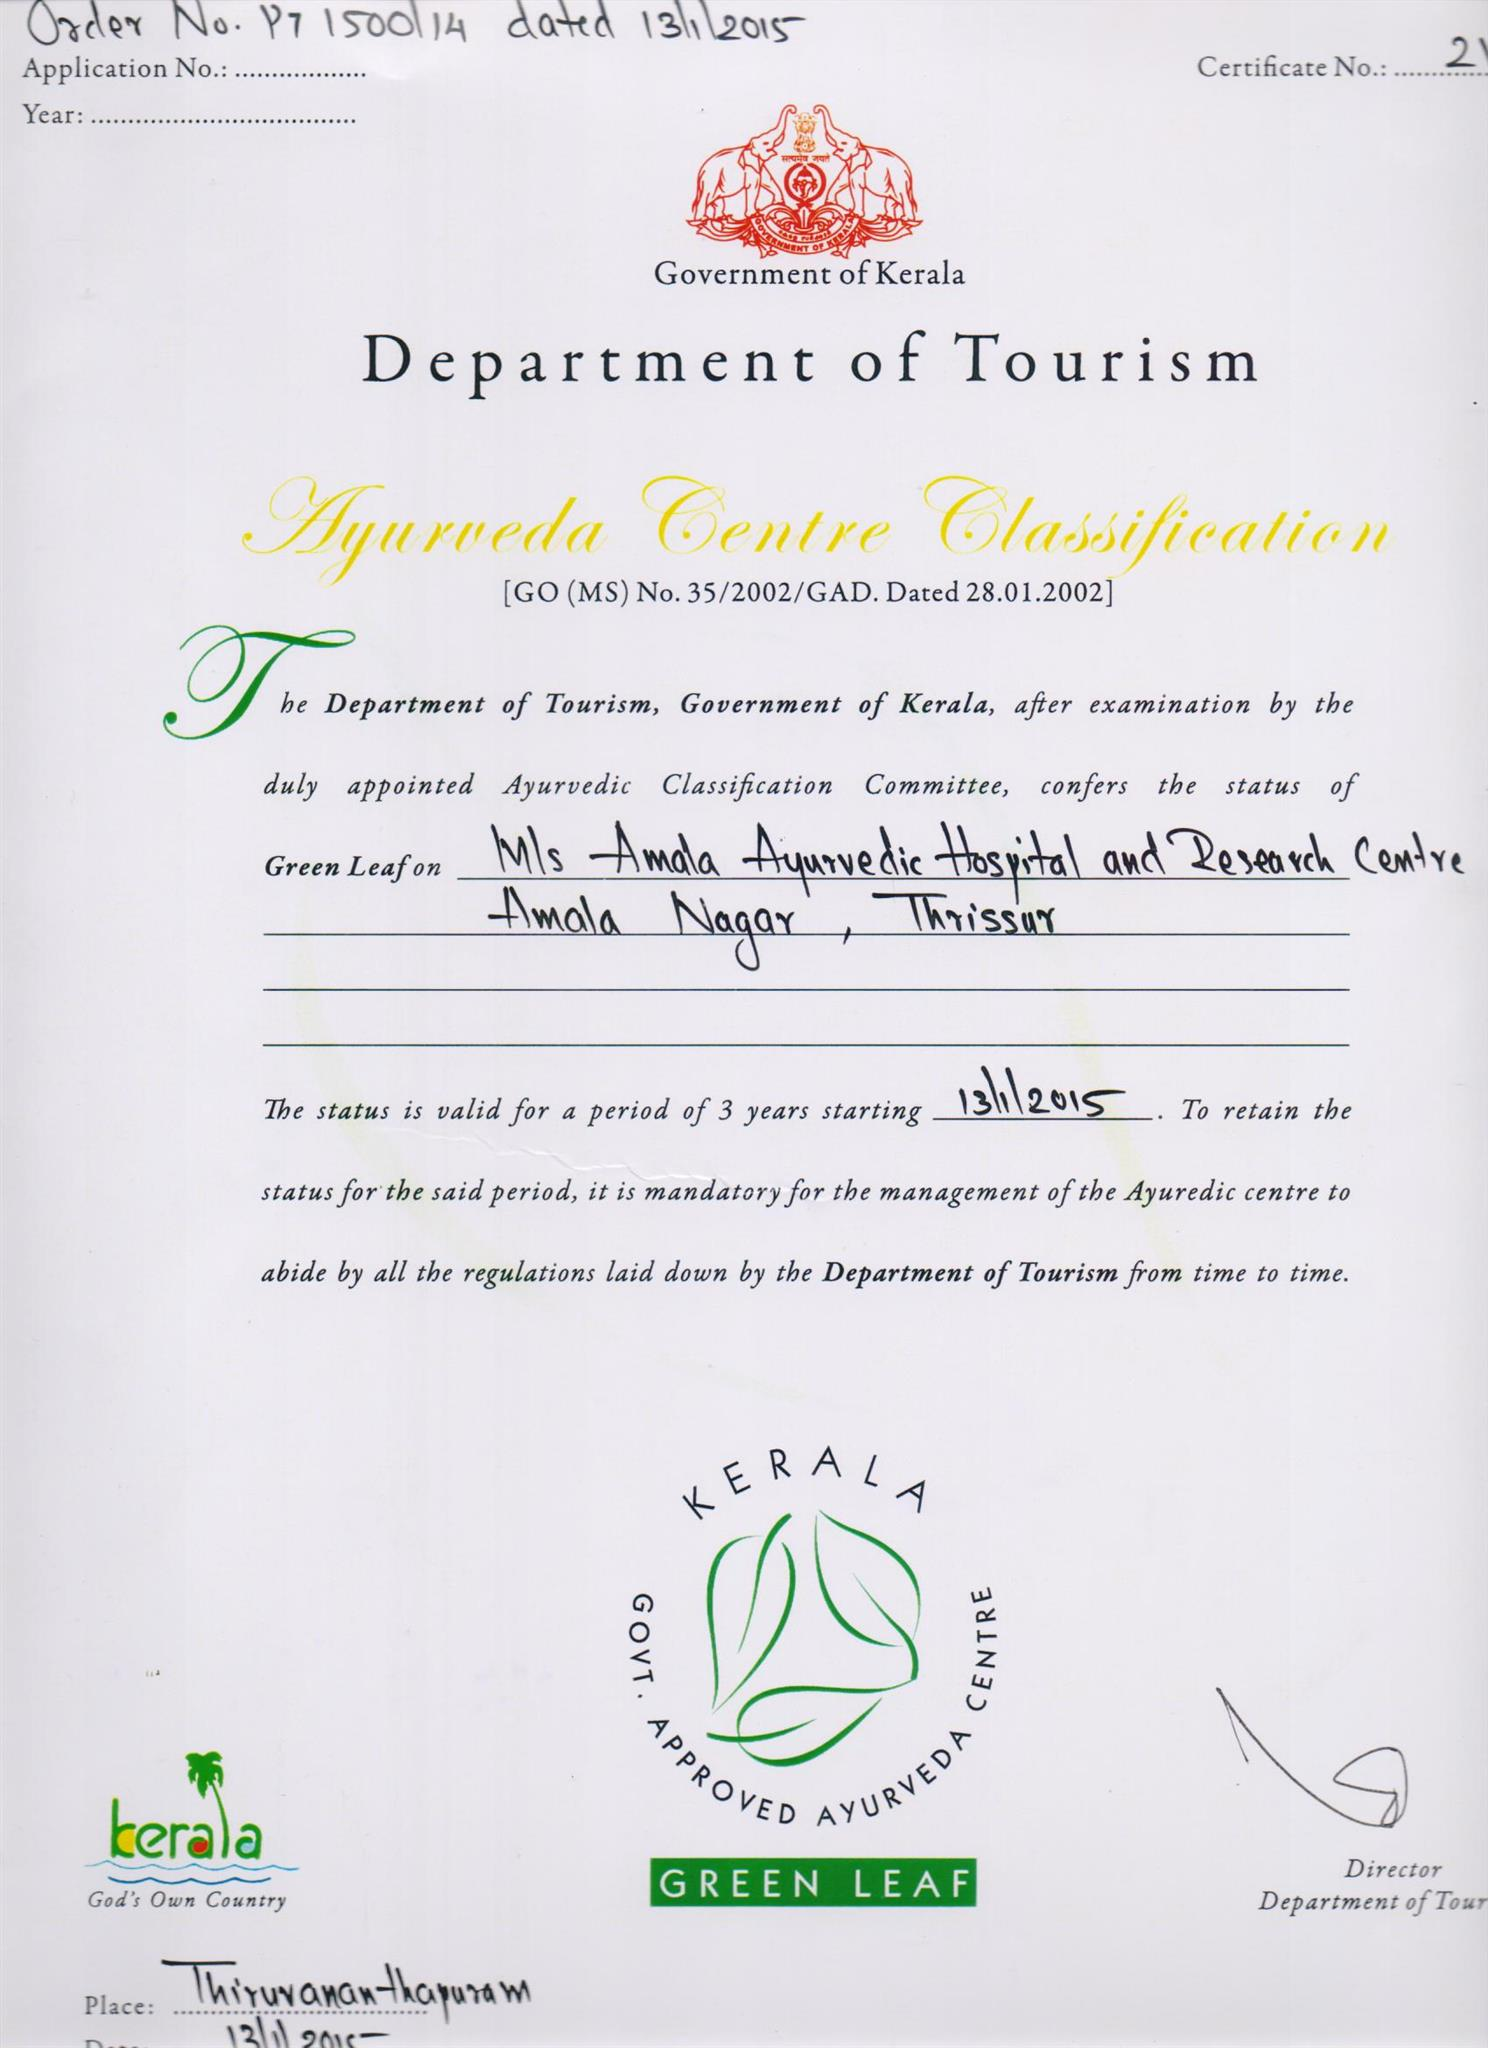 Green Leaf Certified by Government of Kerala